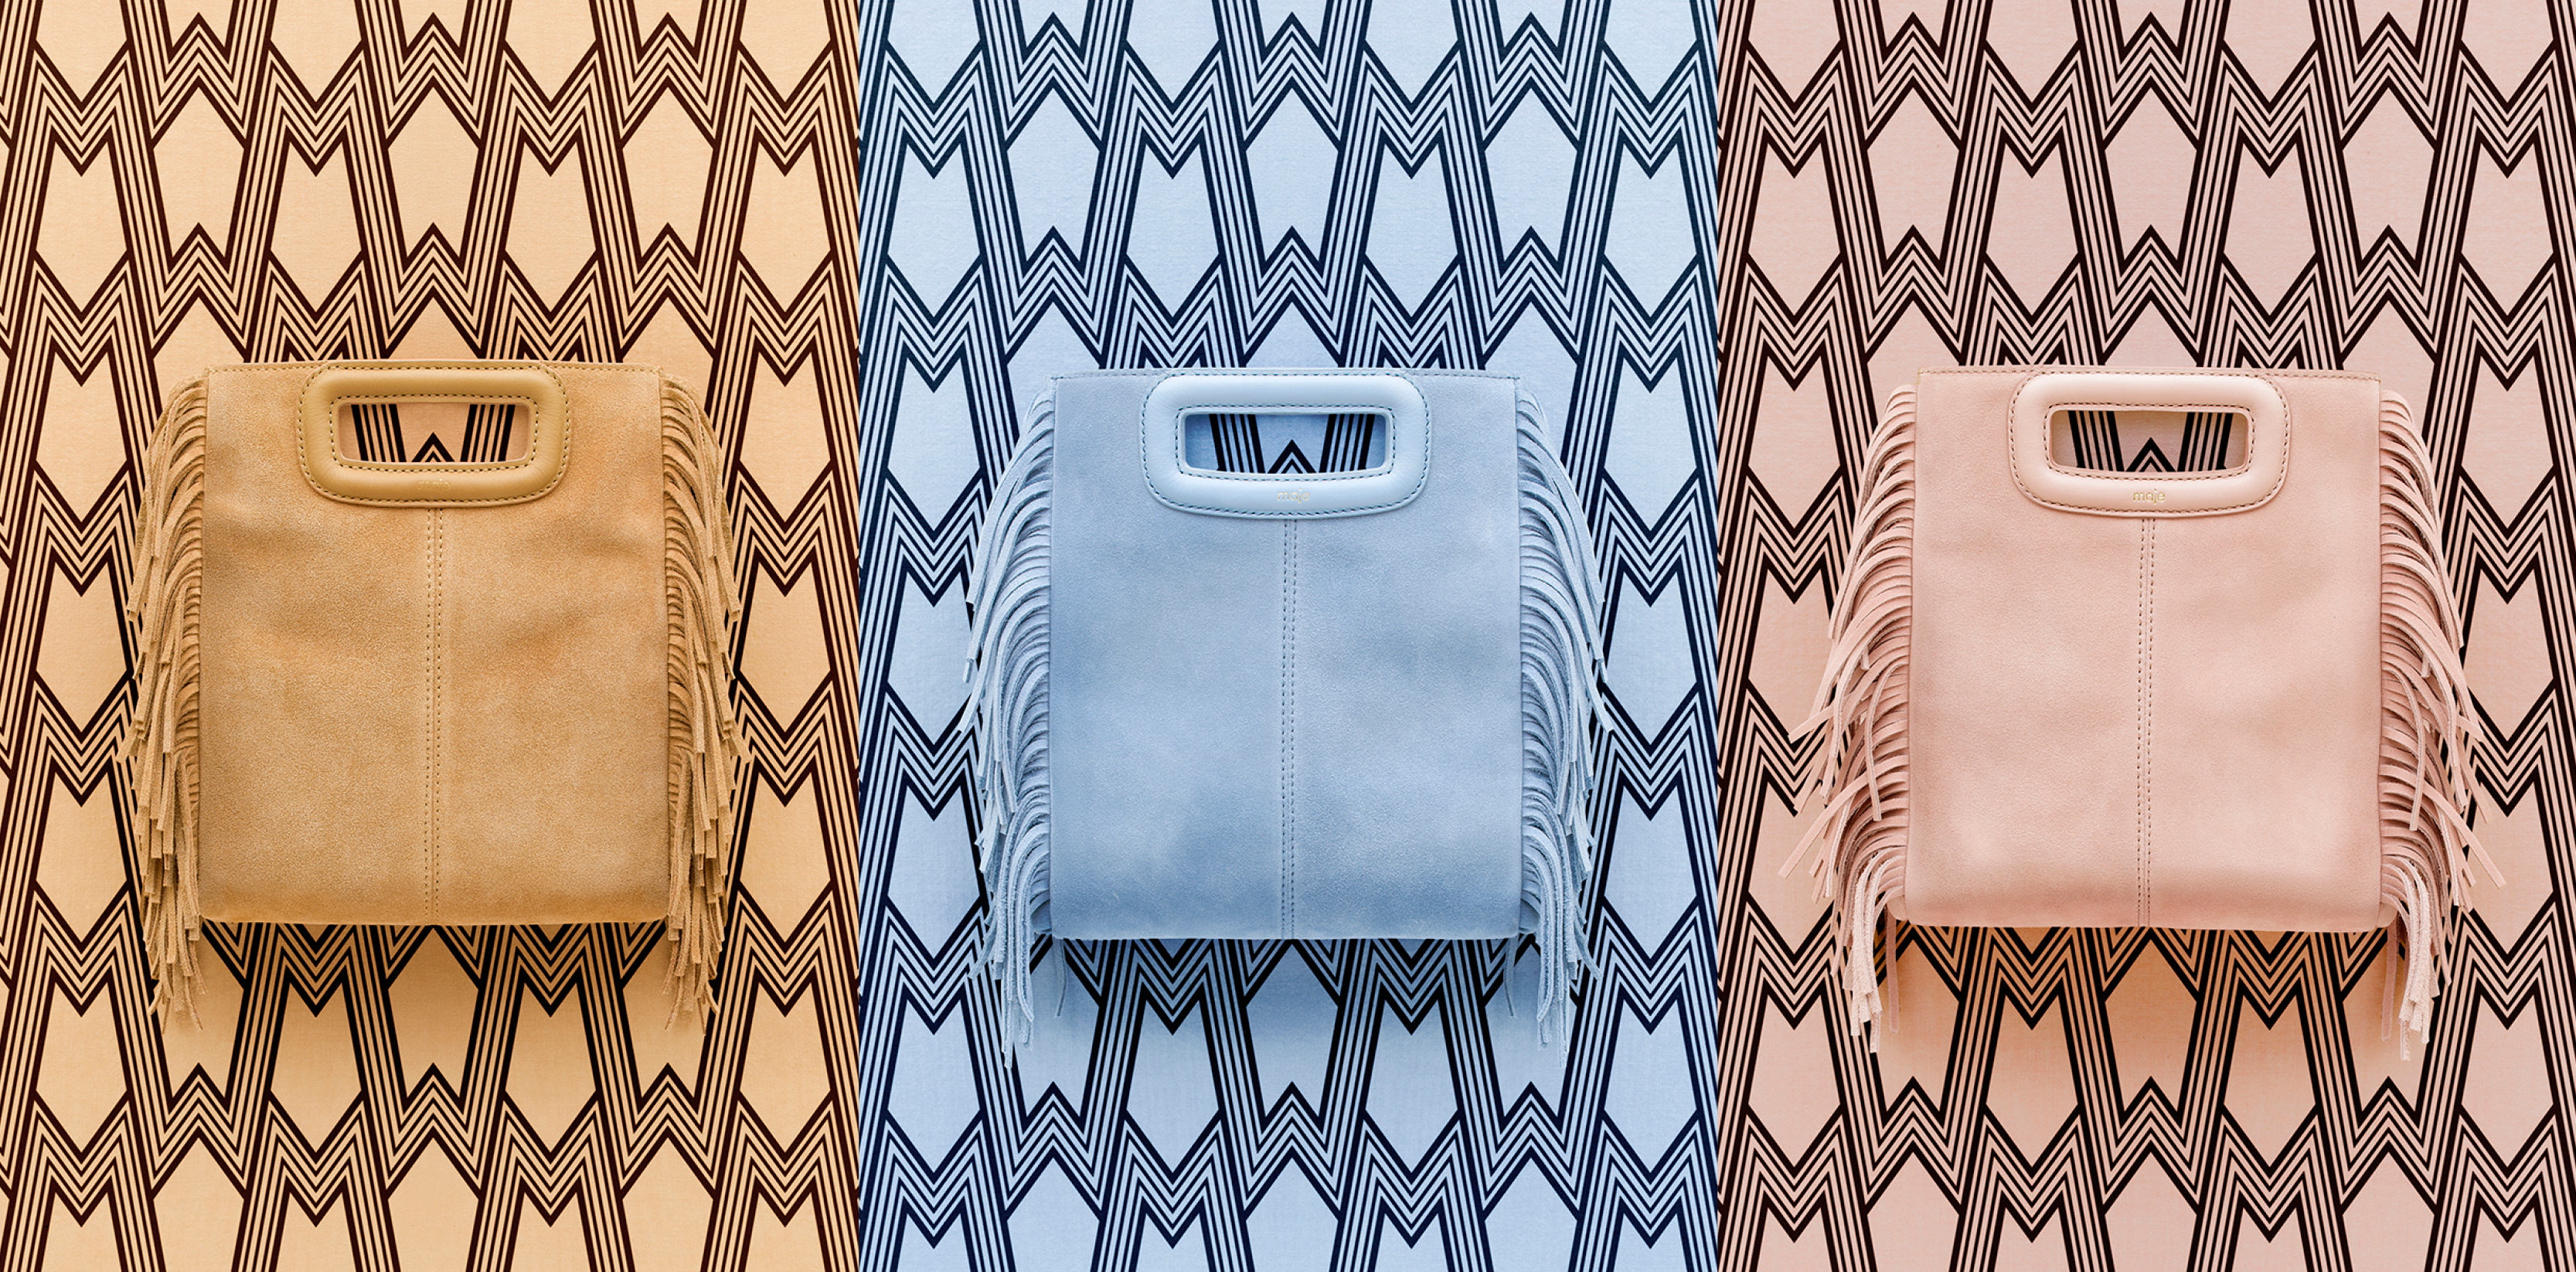 Maje M bag in beige, light blue, and nude.